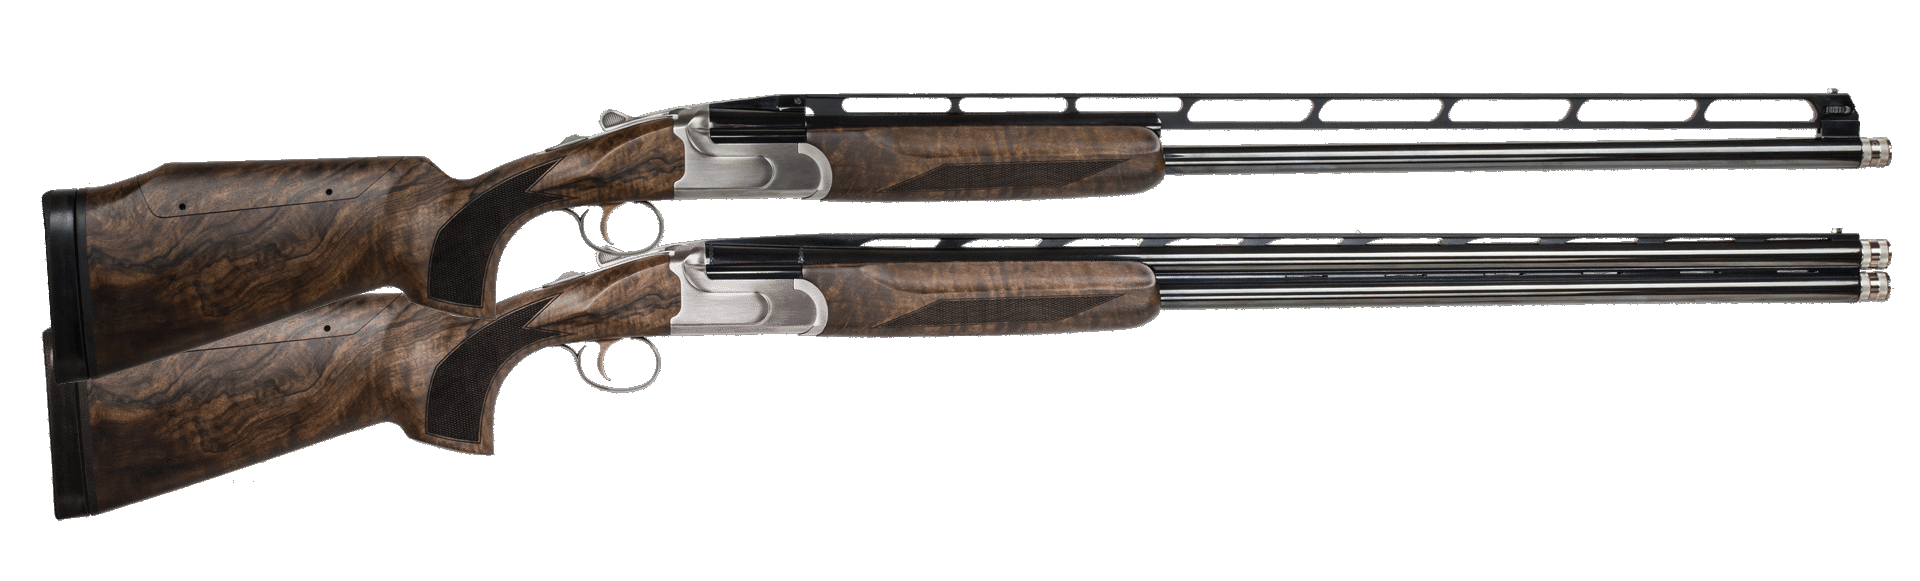 CZ-USA All American Trap Combo Over/Under Shotgun 3'' 12 Gauge 32'' Stainless Steel - Turkish Walnut